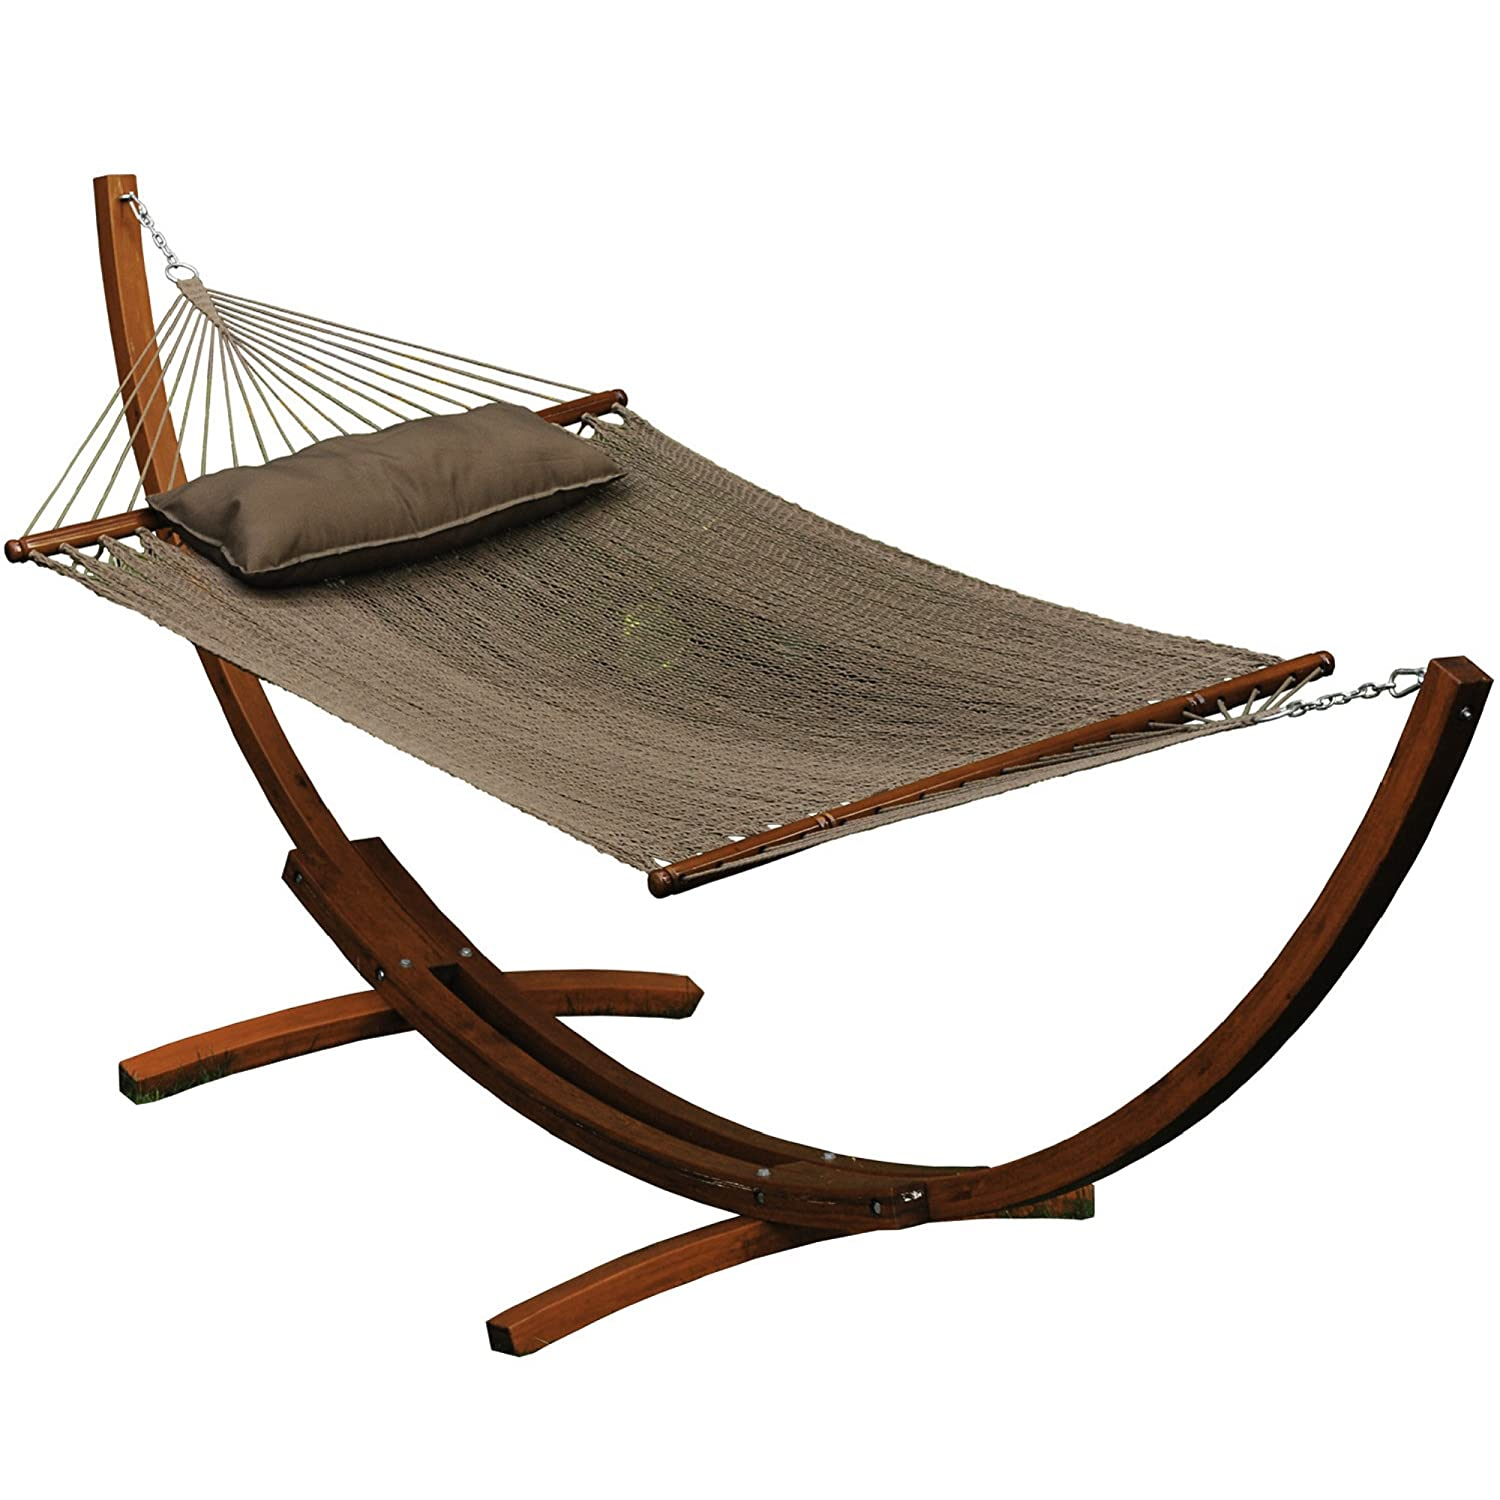 Algoma n 67104914SP Wooden Arc Frame Hammock, Natural